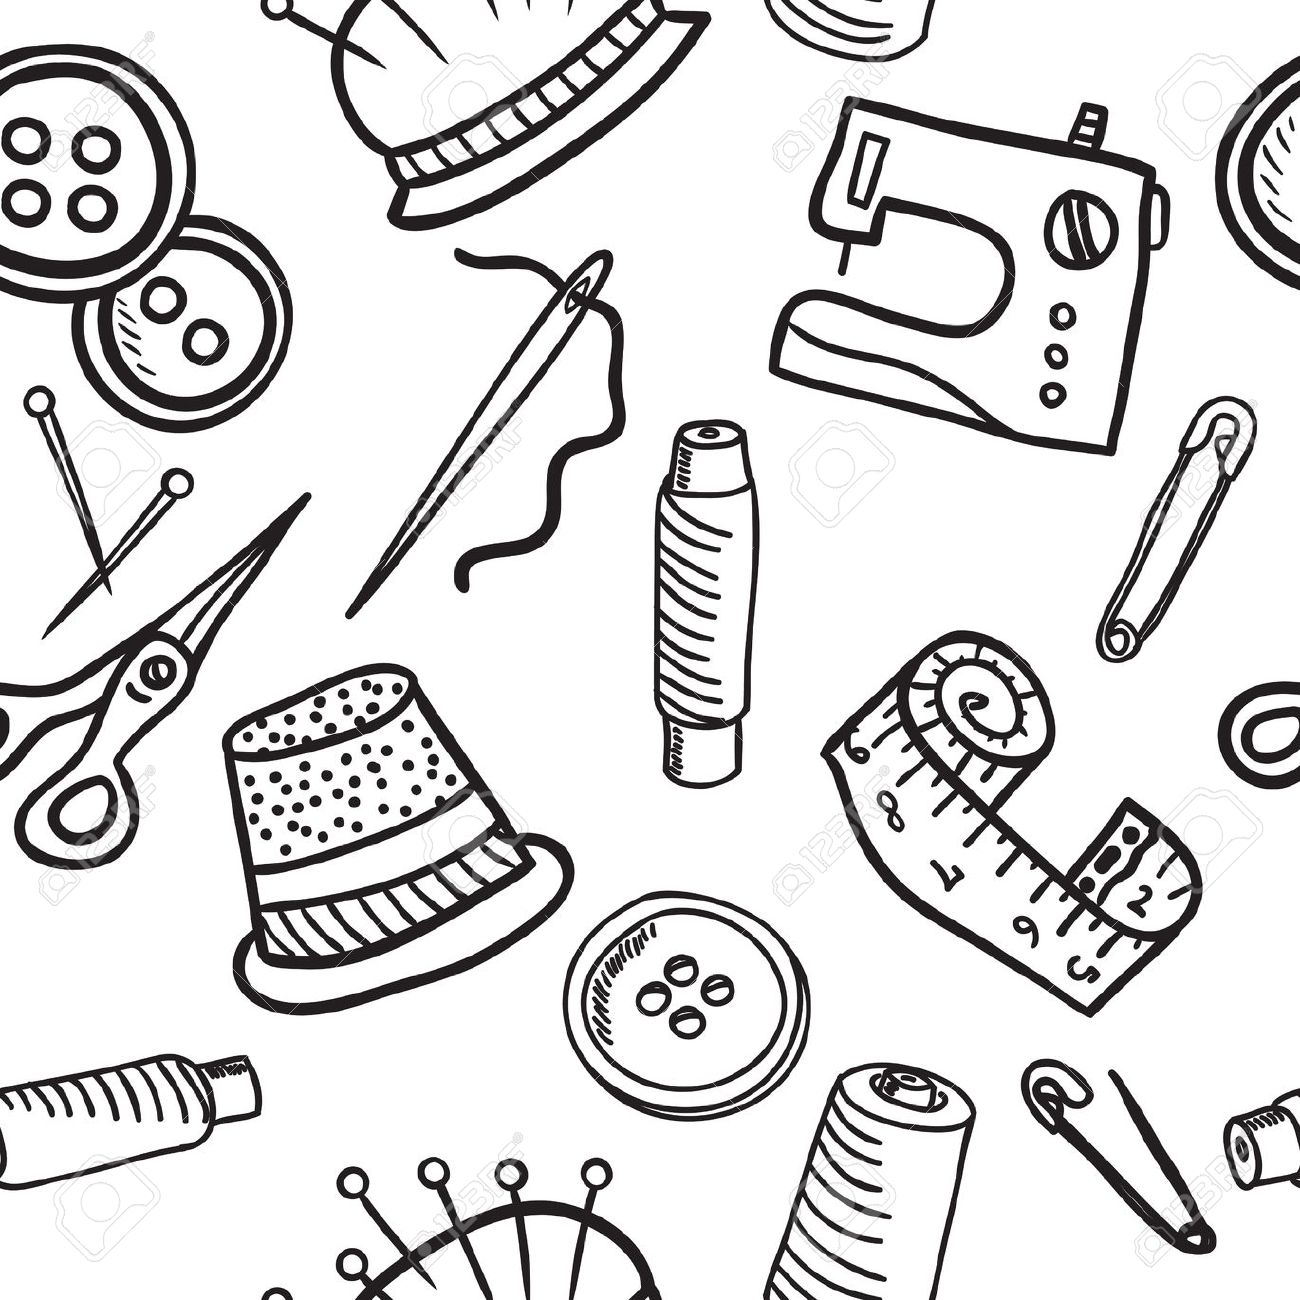 Sewing patterns clipart clip art Clipart for sewing patterns - ClipartFox clip art